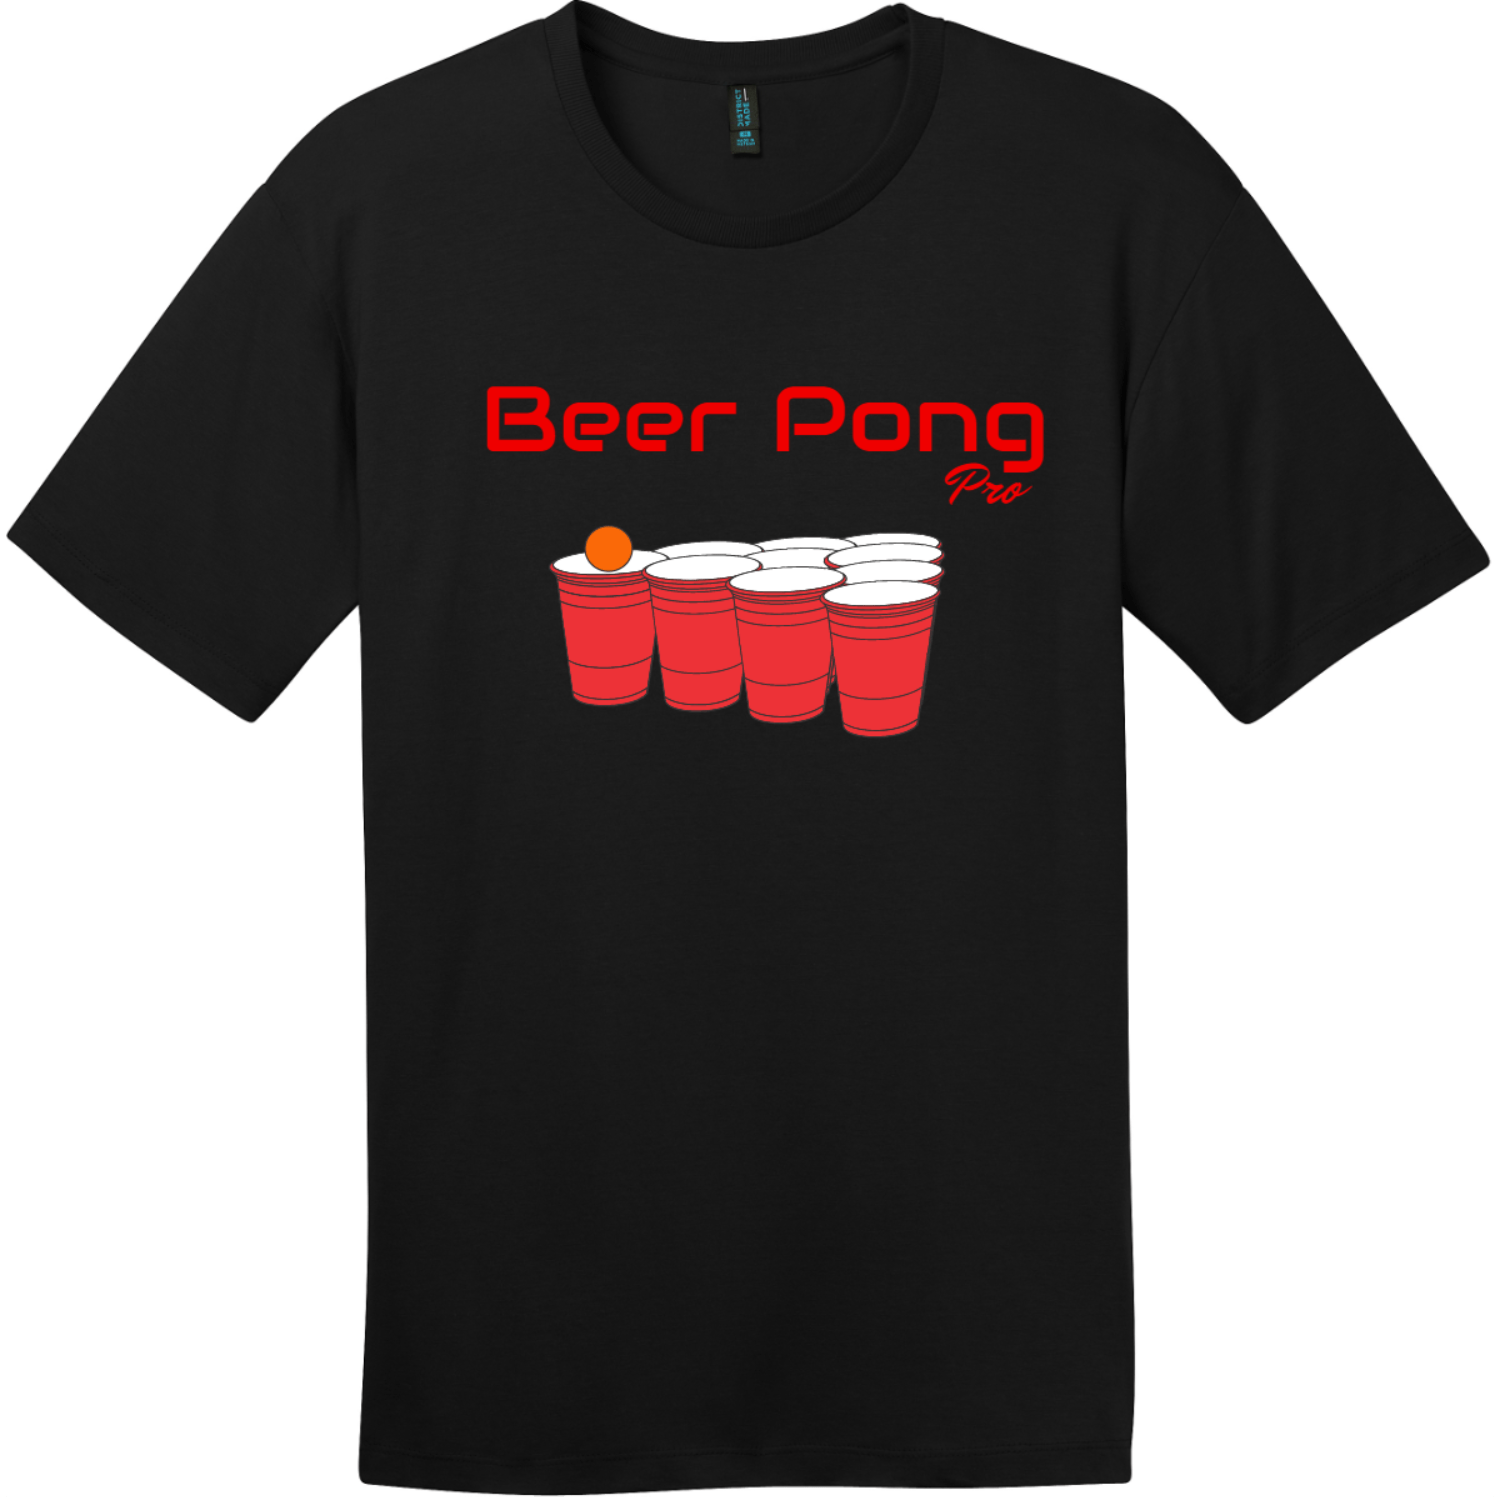 Beer Pong Pro T Shirt Jet Black District Perfect Weight Tee DT104